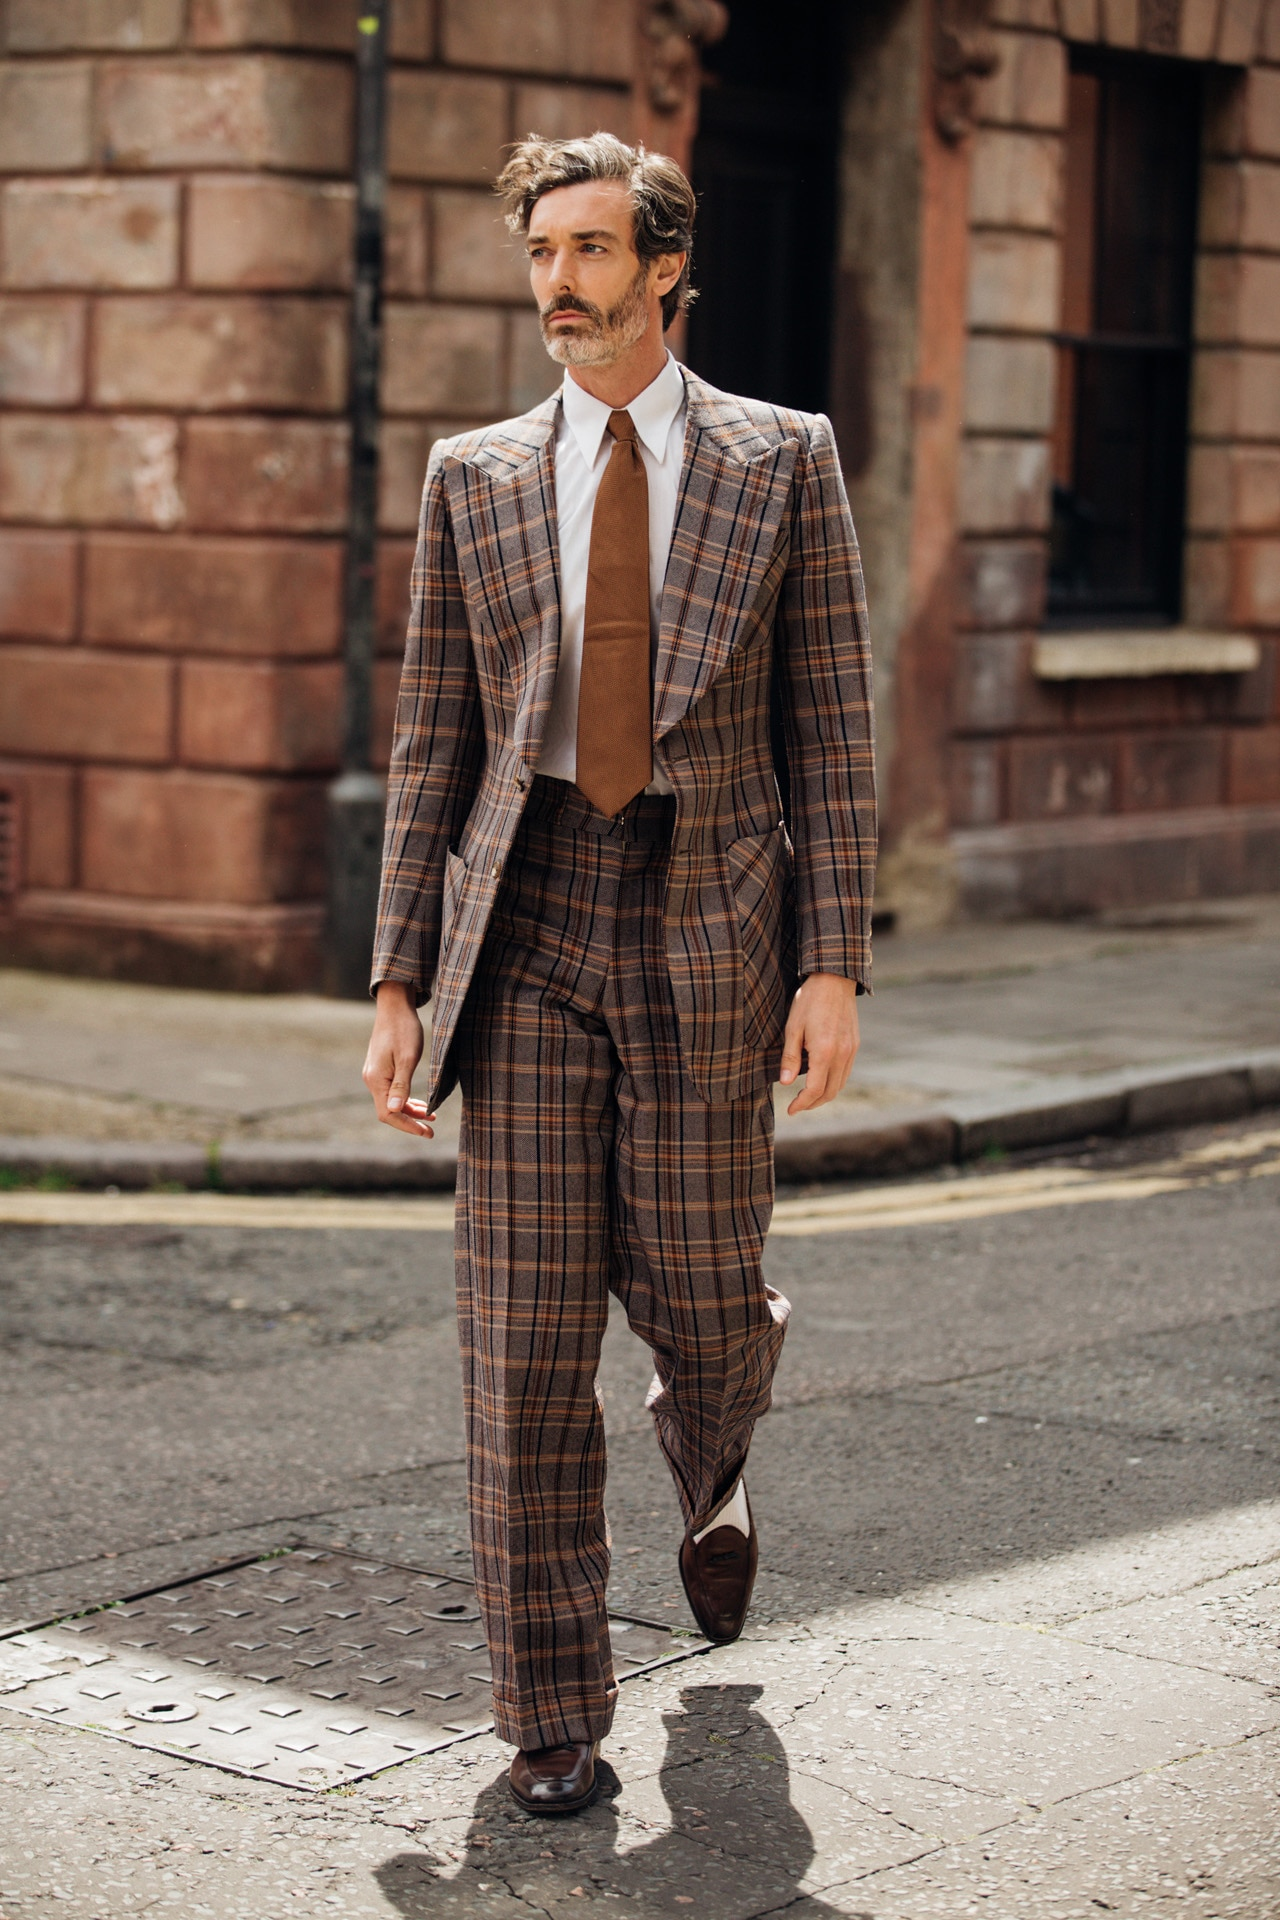 Street style highlights from London Fashion Week Men's spring/summer 2020